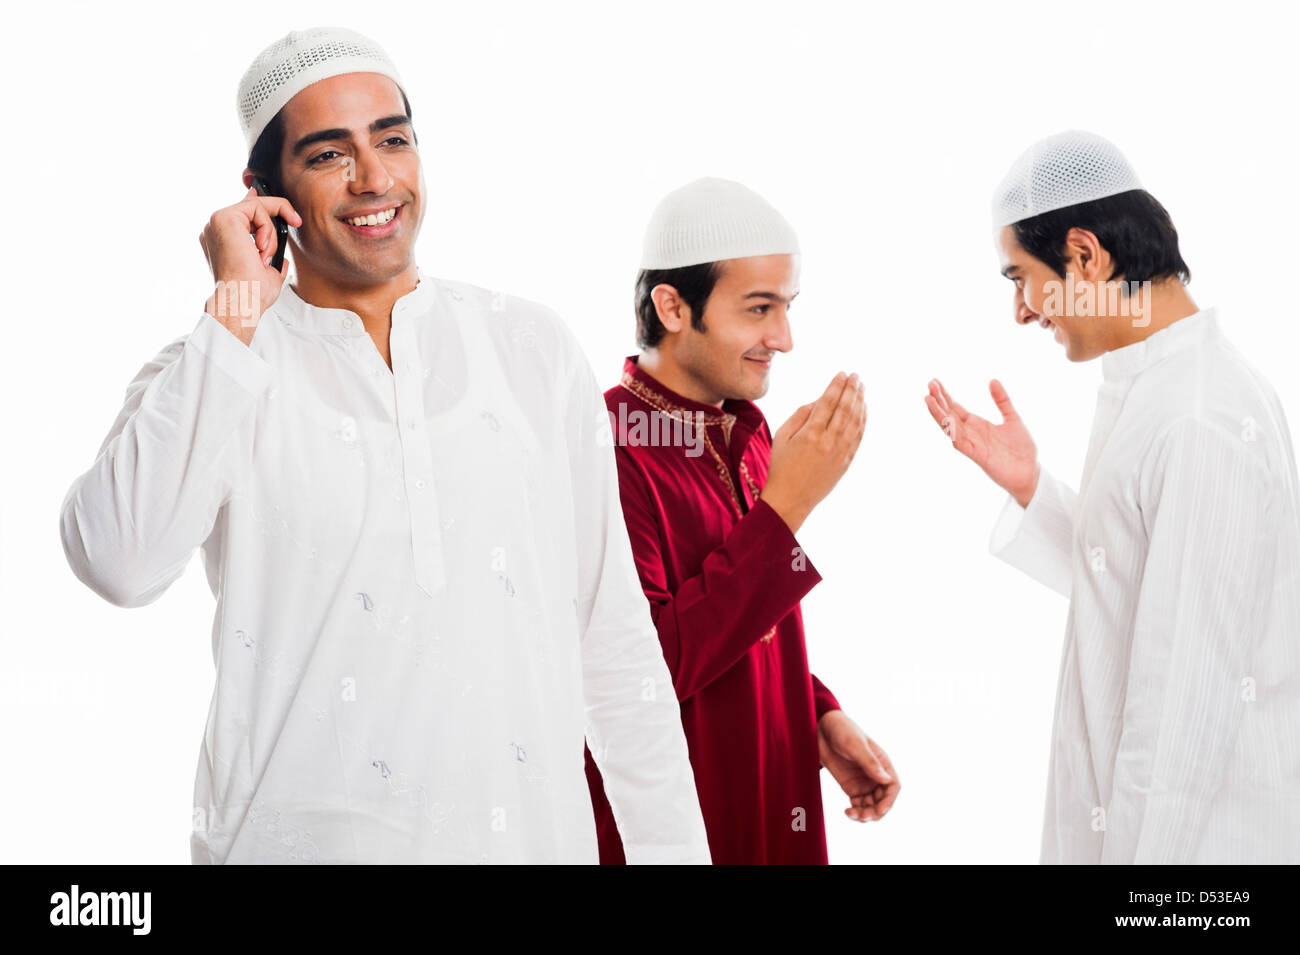 Indian Muslim Man Greeting Stock Photos Indian Muslim Man Greeting